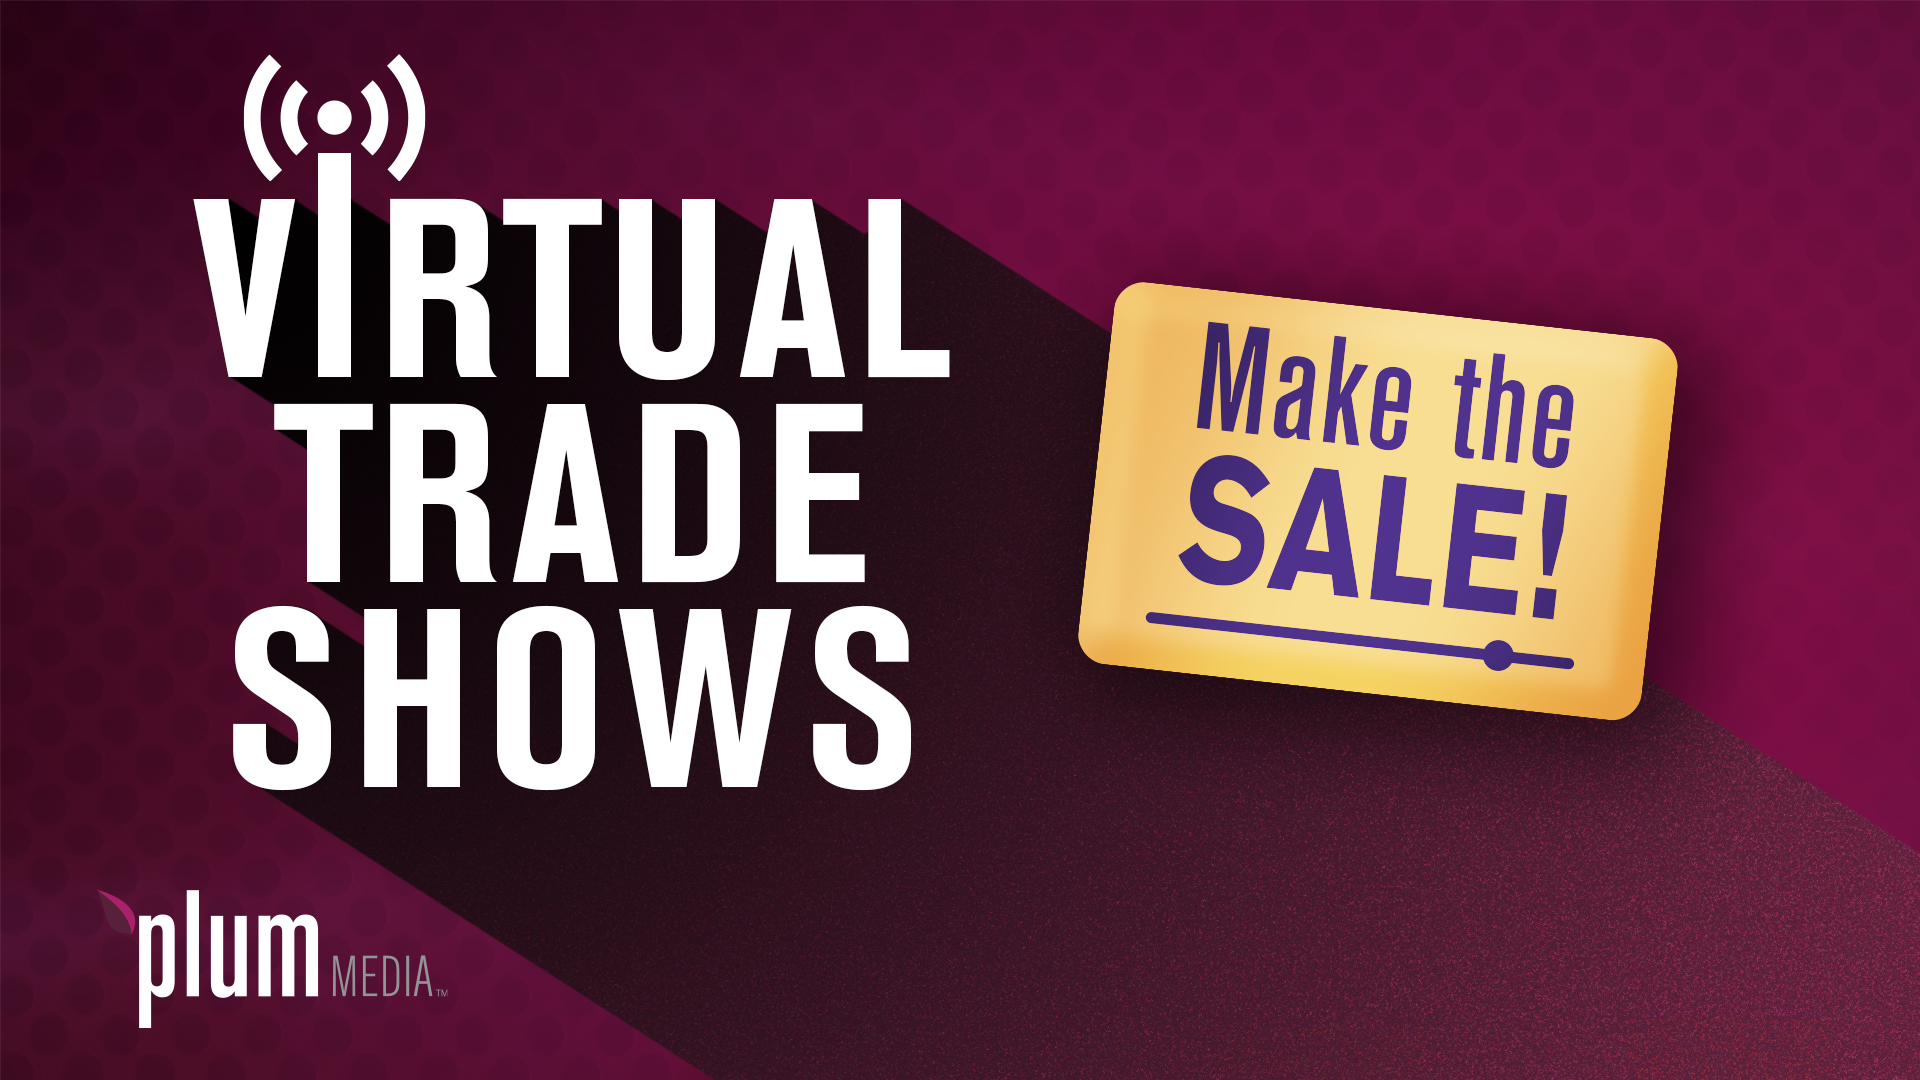 Virtual Trade Shows Make The Sale